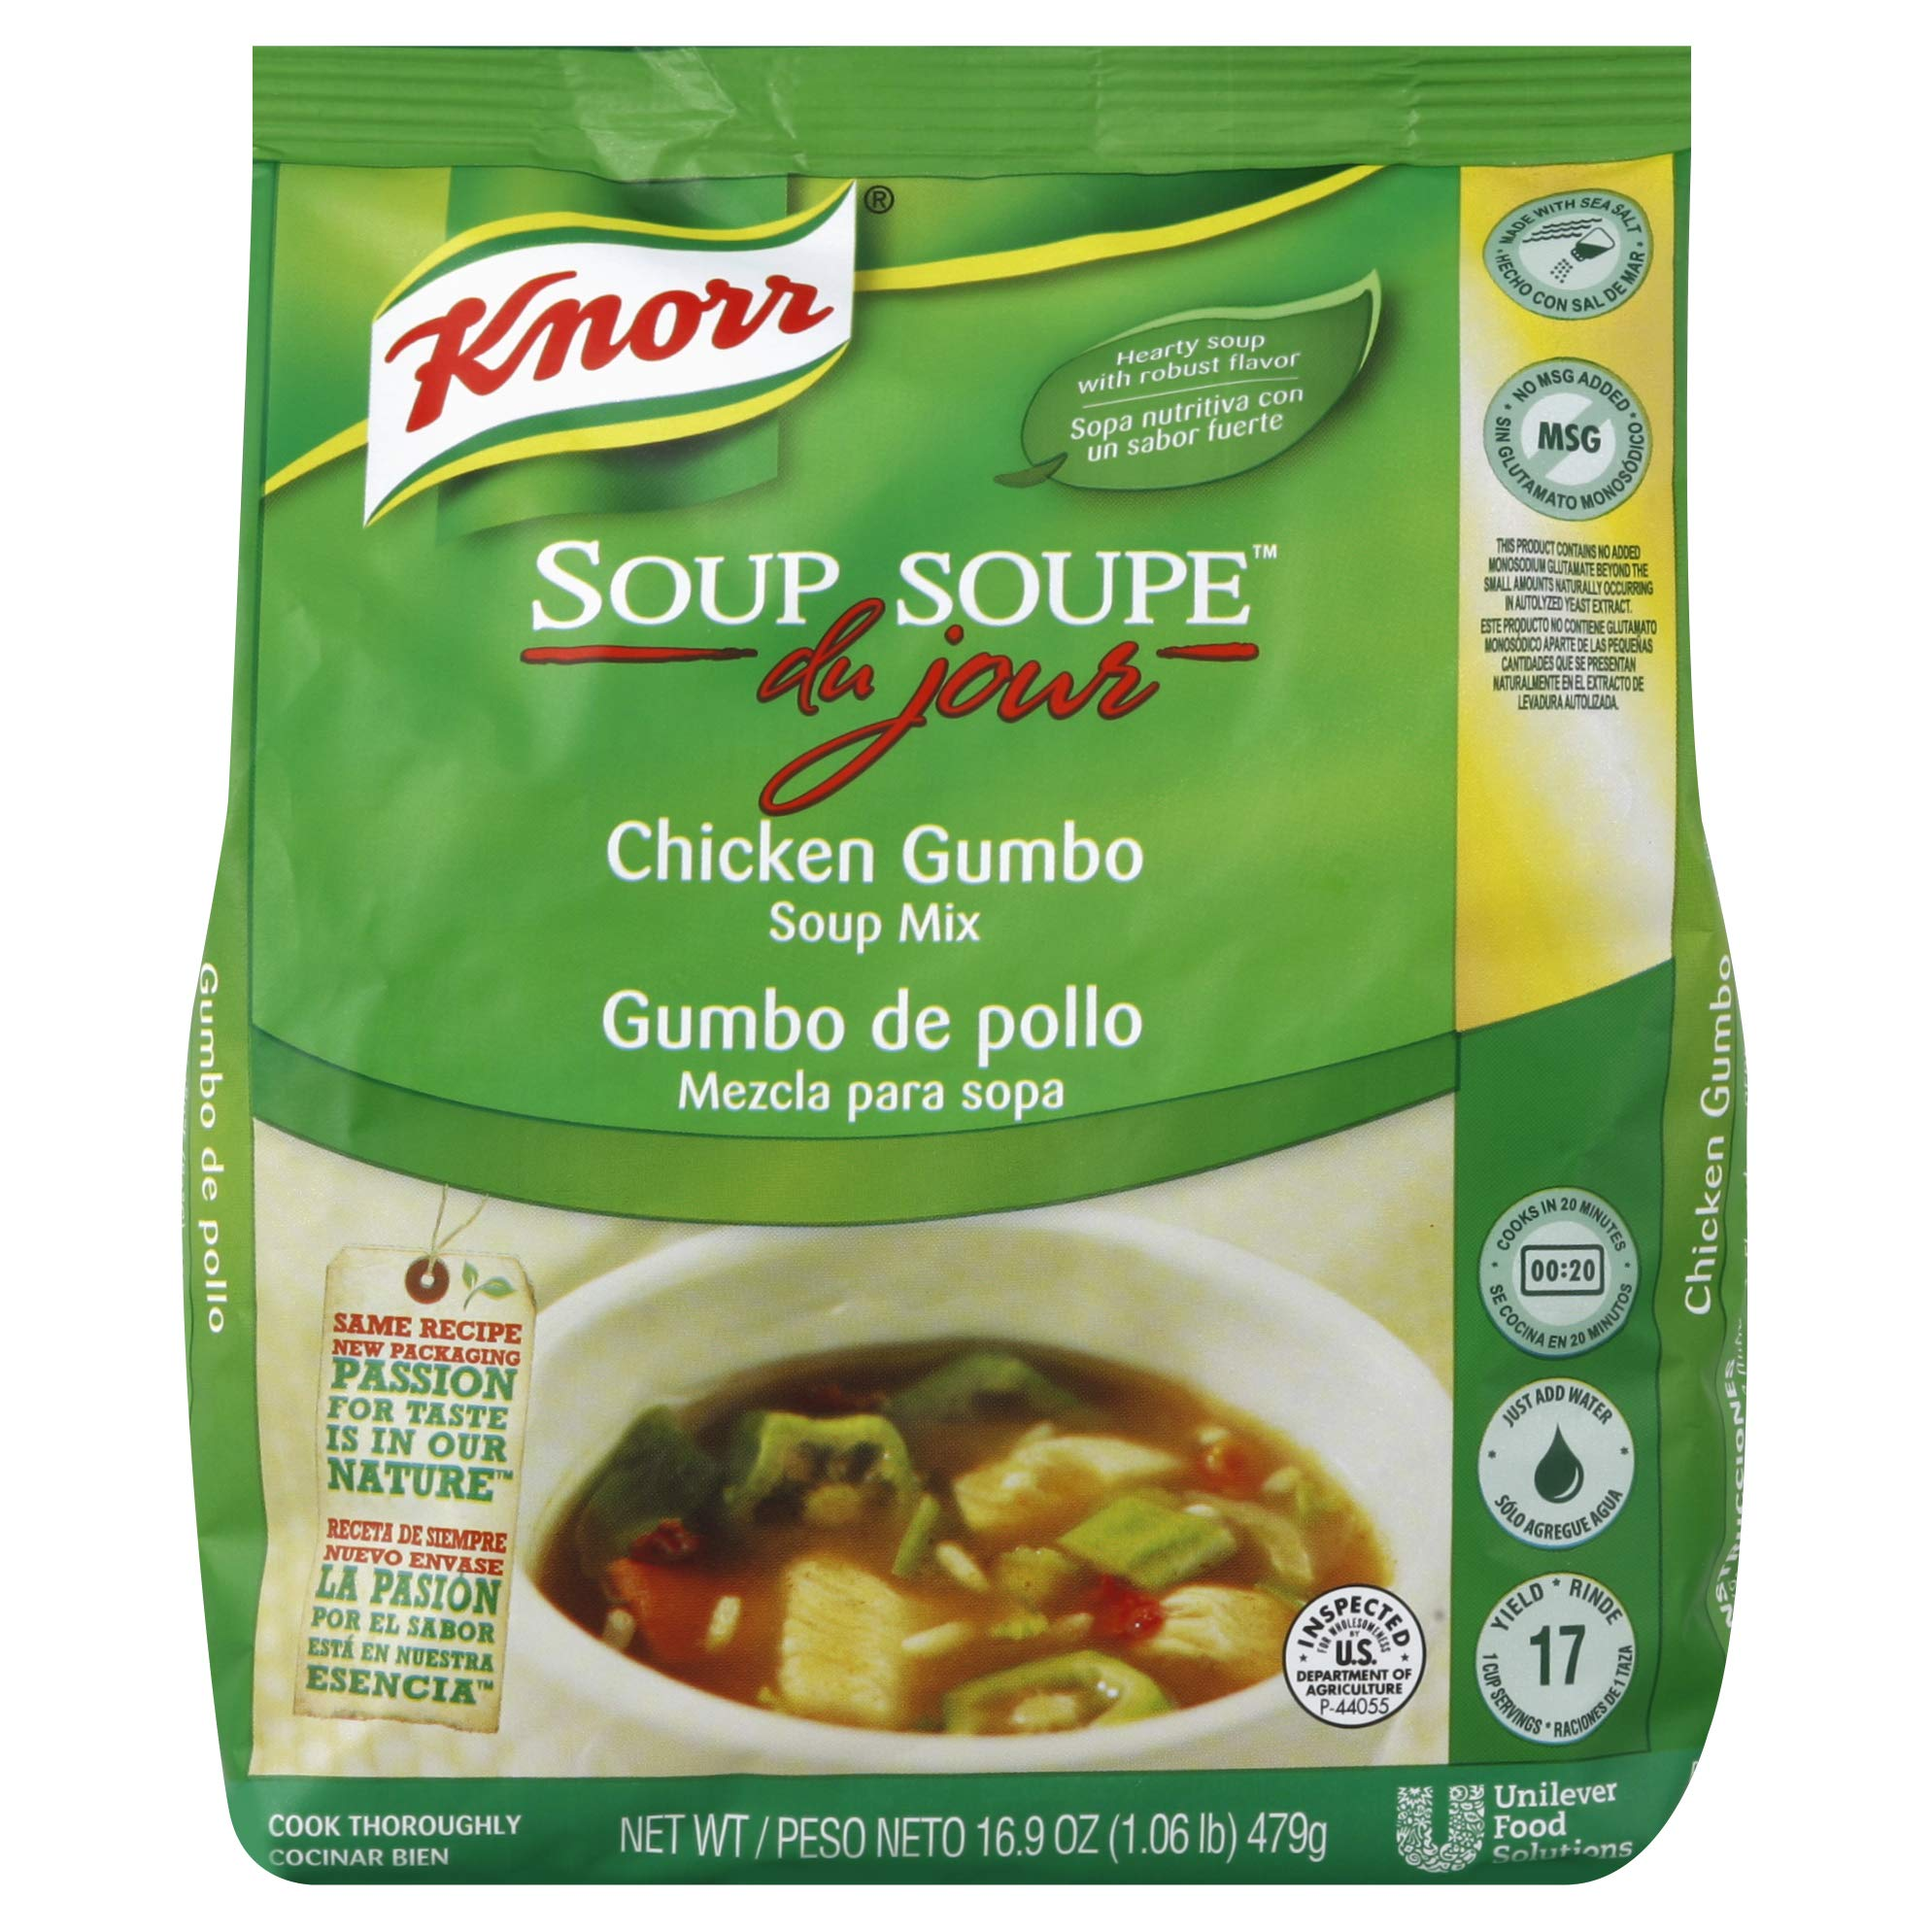 Knorr Soup du Jour Mix Chicken Gumbo 16.9 ounces 4 count by Knorr